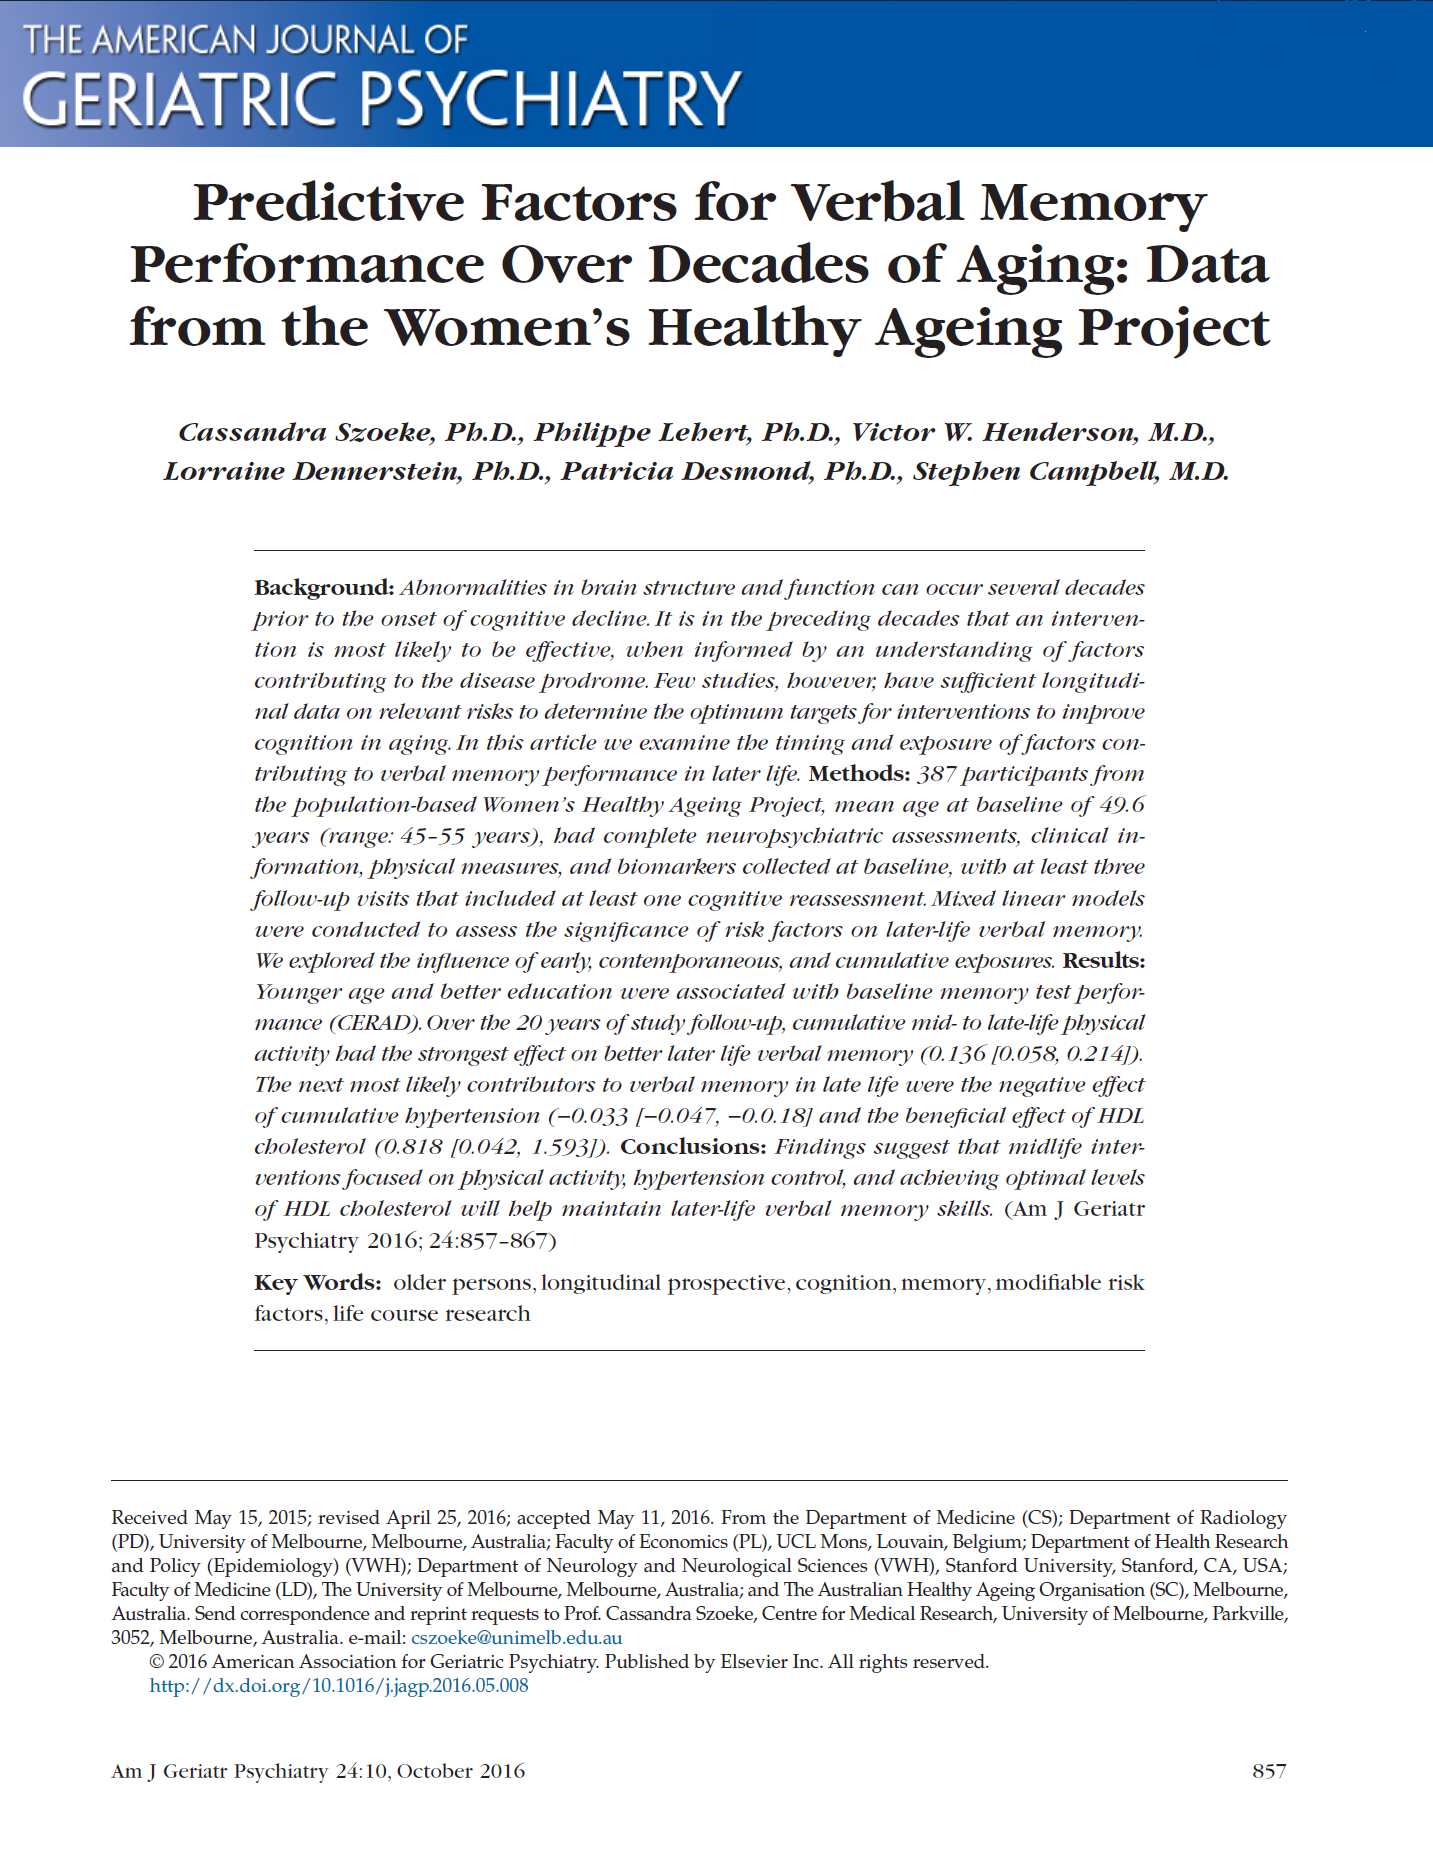 Predictive factors for verbal memory performance over decades of aging - This research examining the impact and timing of modifiable risk factors on memory performance in women from midlife to later life, over a period of 20 years (from 45-55 years). Greater physical activity and and HDL cholesterol levels had a positive effect on verbal memory performance in later life, with hypertension having a negative effect. These factors were found to have a cumulative effect, showing that a life-course approach to interventions for memory are warranted.   Citation: Szoeke, C., et al (2016). Predictive factors for verbal memory performance over decades of aging: Data from the Women's Healthy Ageing Project. American Journal of Geriatric Psychiatry, 24(10), 857-867. doi: 10.1016/j.jagp.2016.05.008